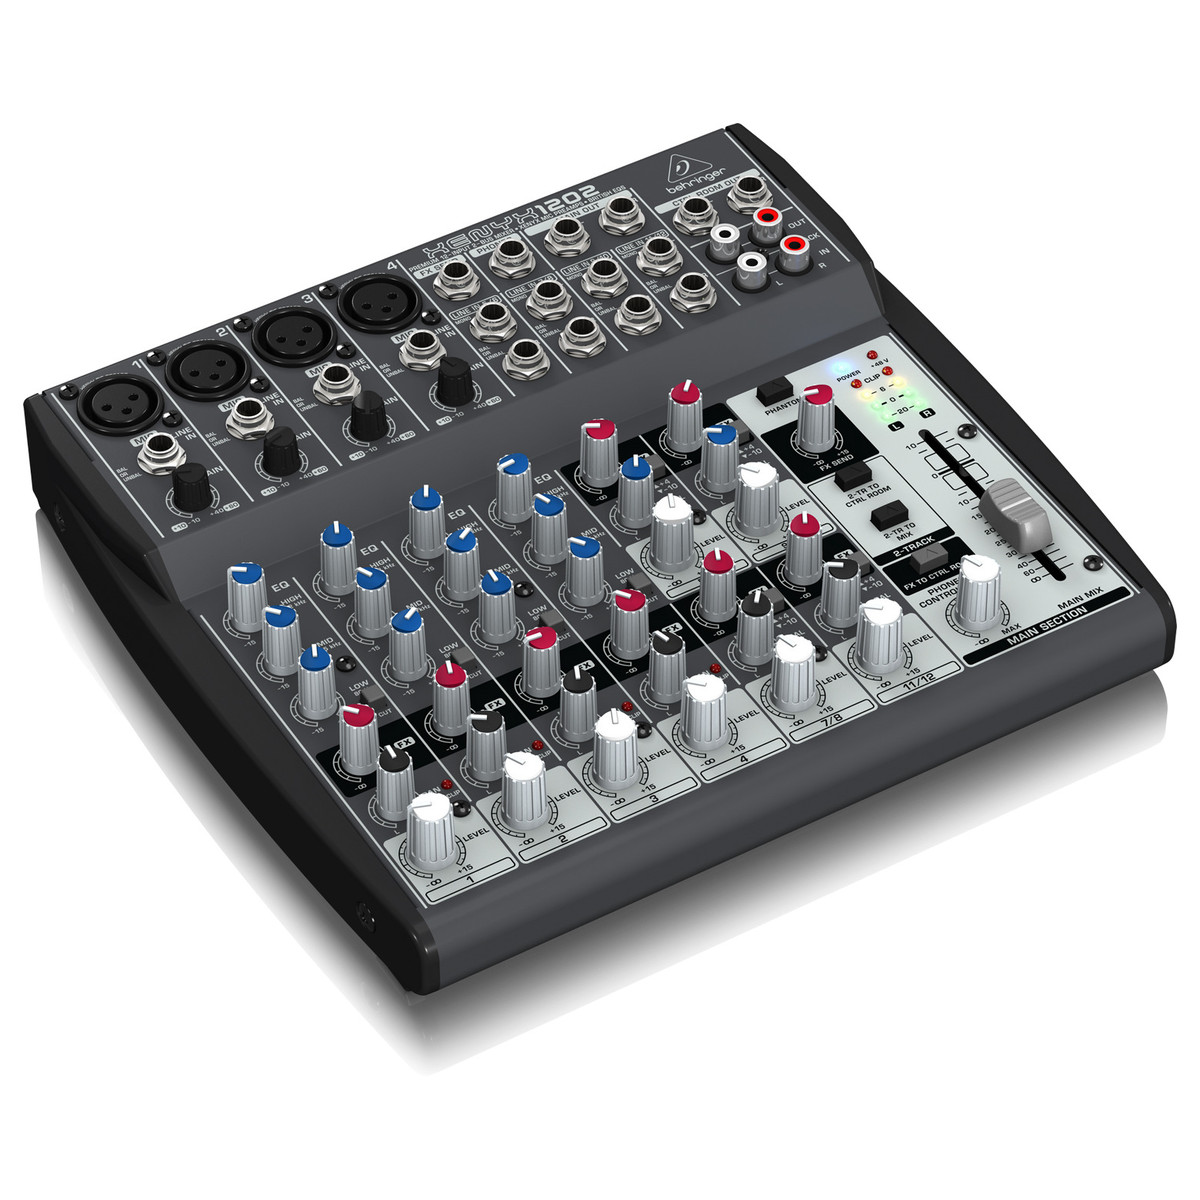 Behringer xenyx 1202 table de mixage gear4music - Table de mixage behringer ...